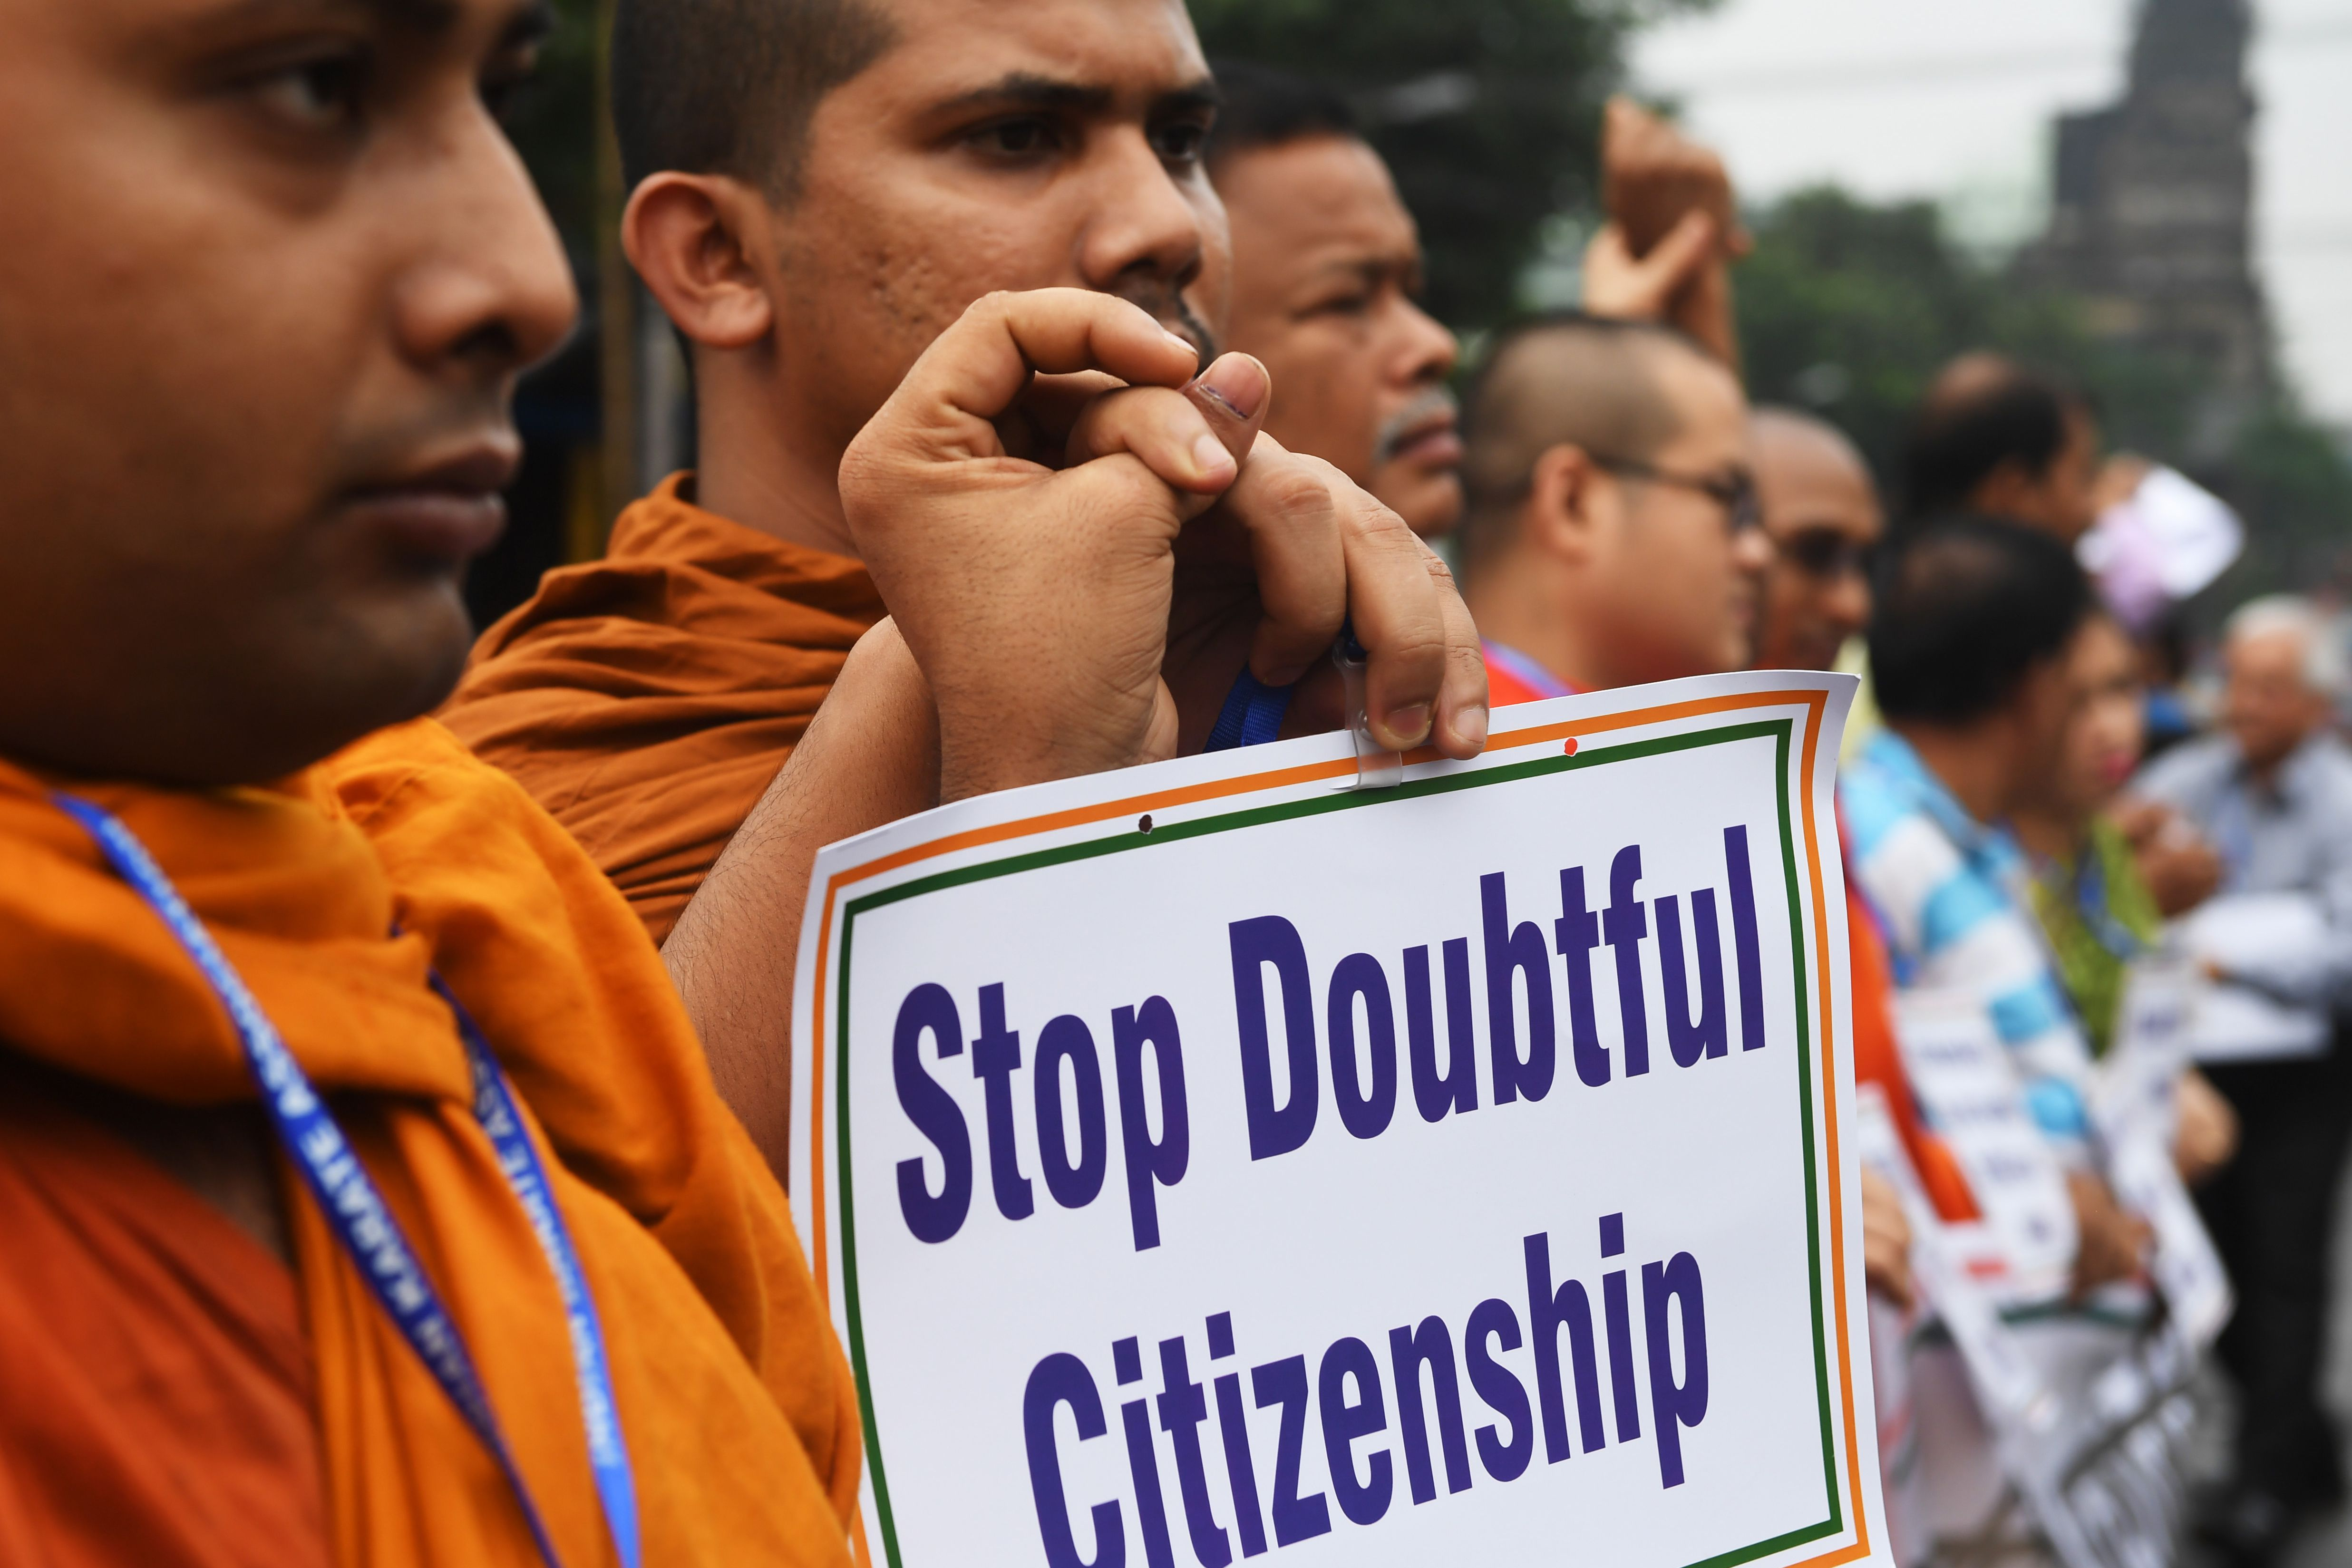 Social activists hold posters during a protest following the publication of a draft of the National Register of Citizens (NRC) in Kolkata on August 1, 2018.